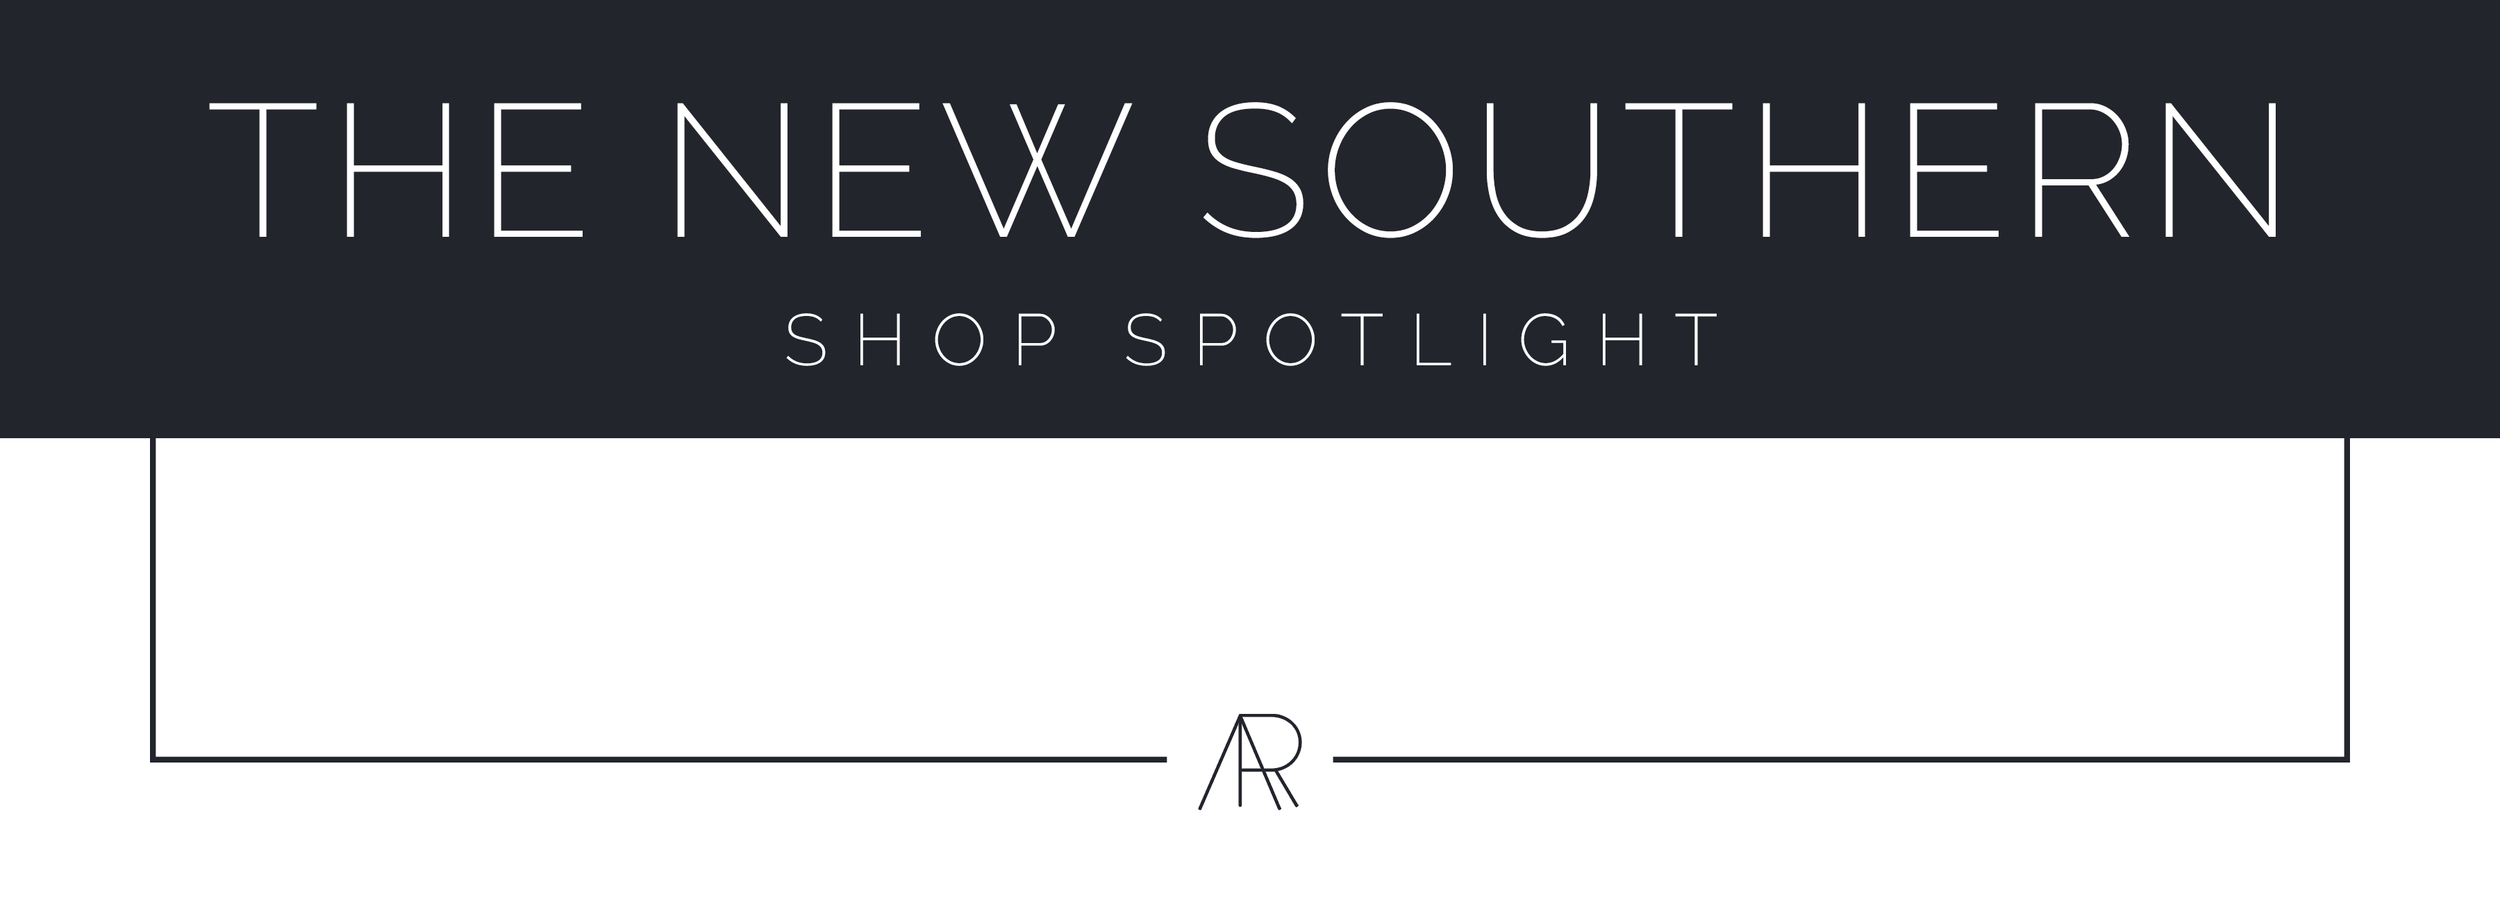 Alyssa Rosenheck's The New Southern Shop Spotlight with Jacqueline Buckner & Elizabeth White, Owners of Twine & Twig of Charlotte, NC